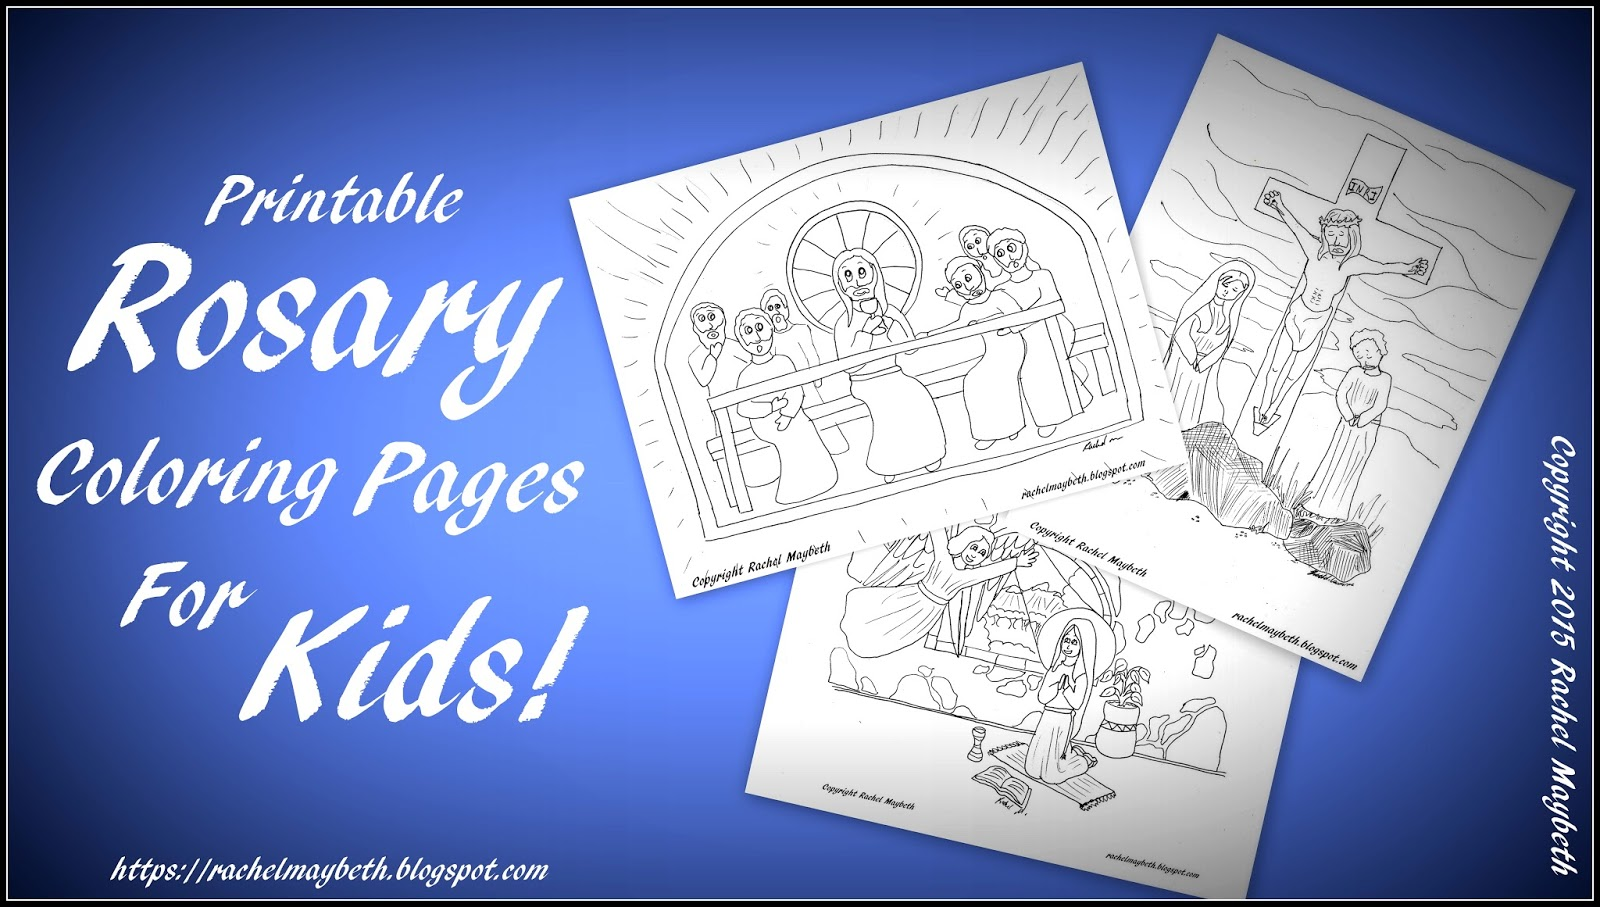 Mysteries Of The Rosary Free Coloring Pages By Rachel Maybeth